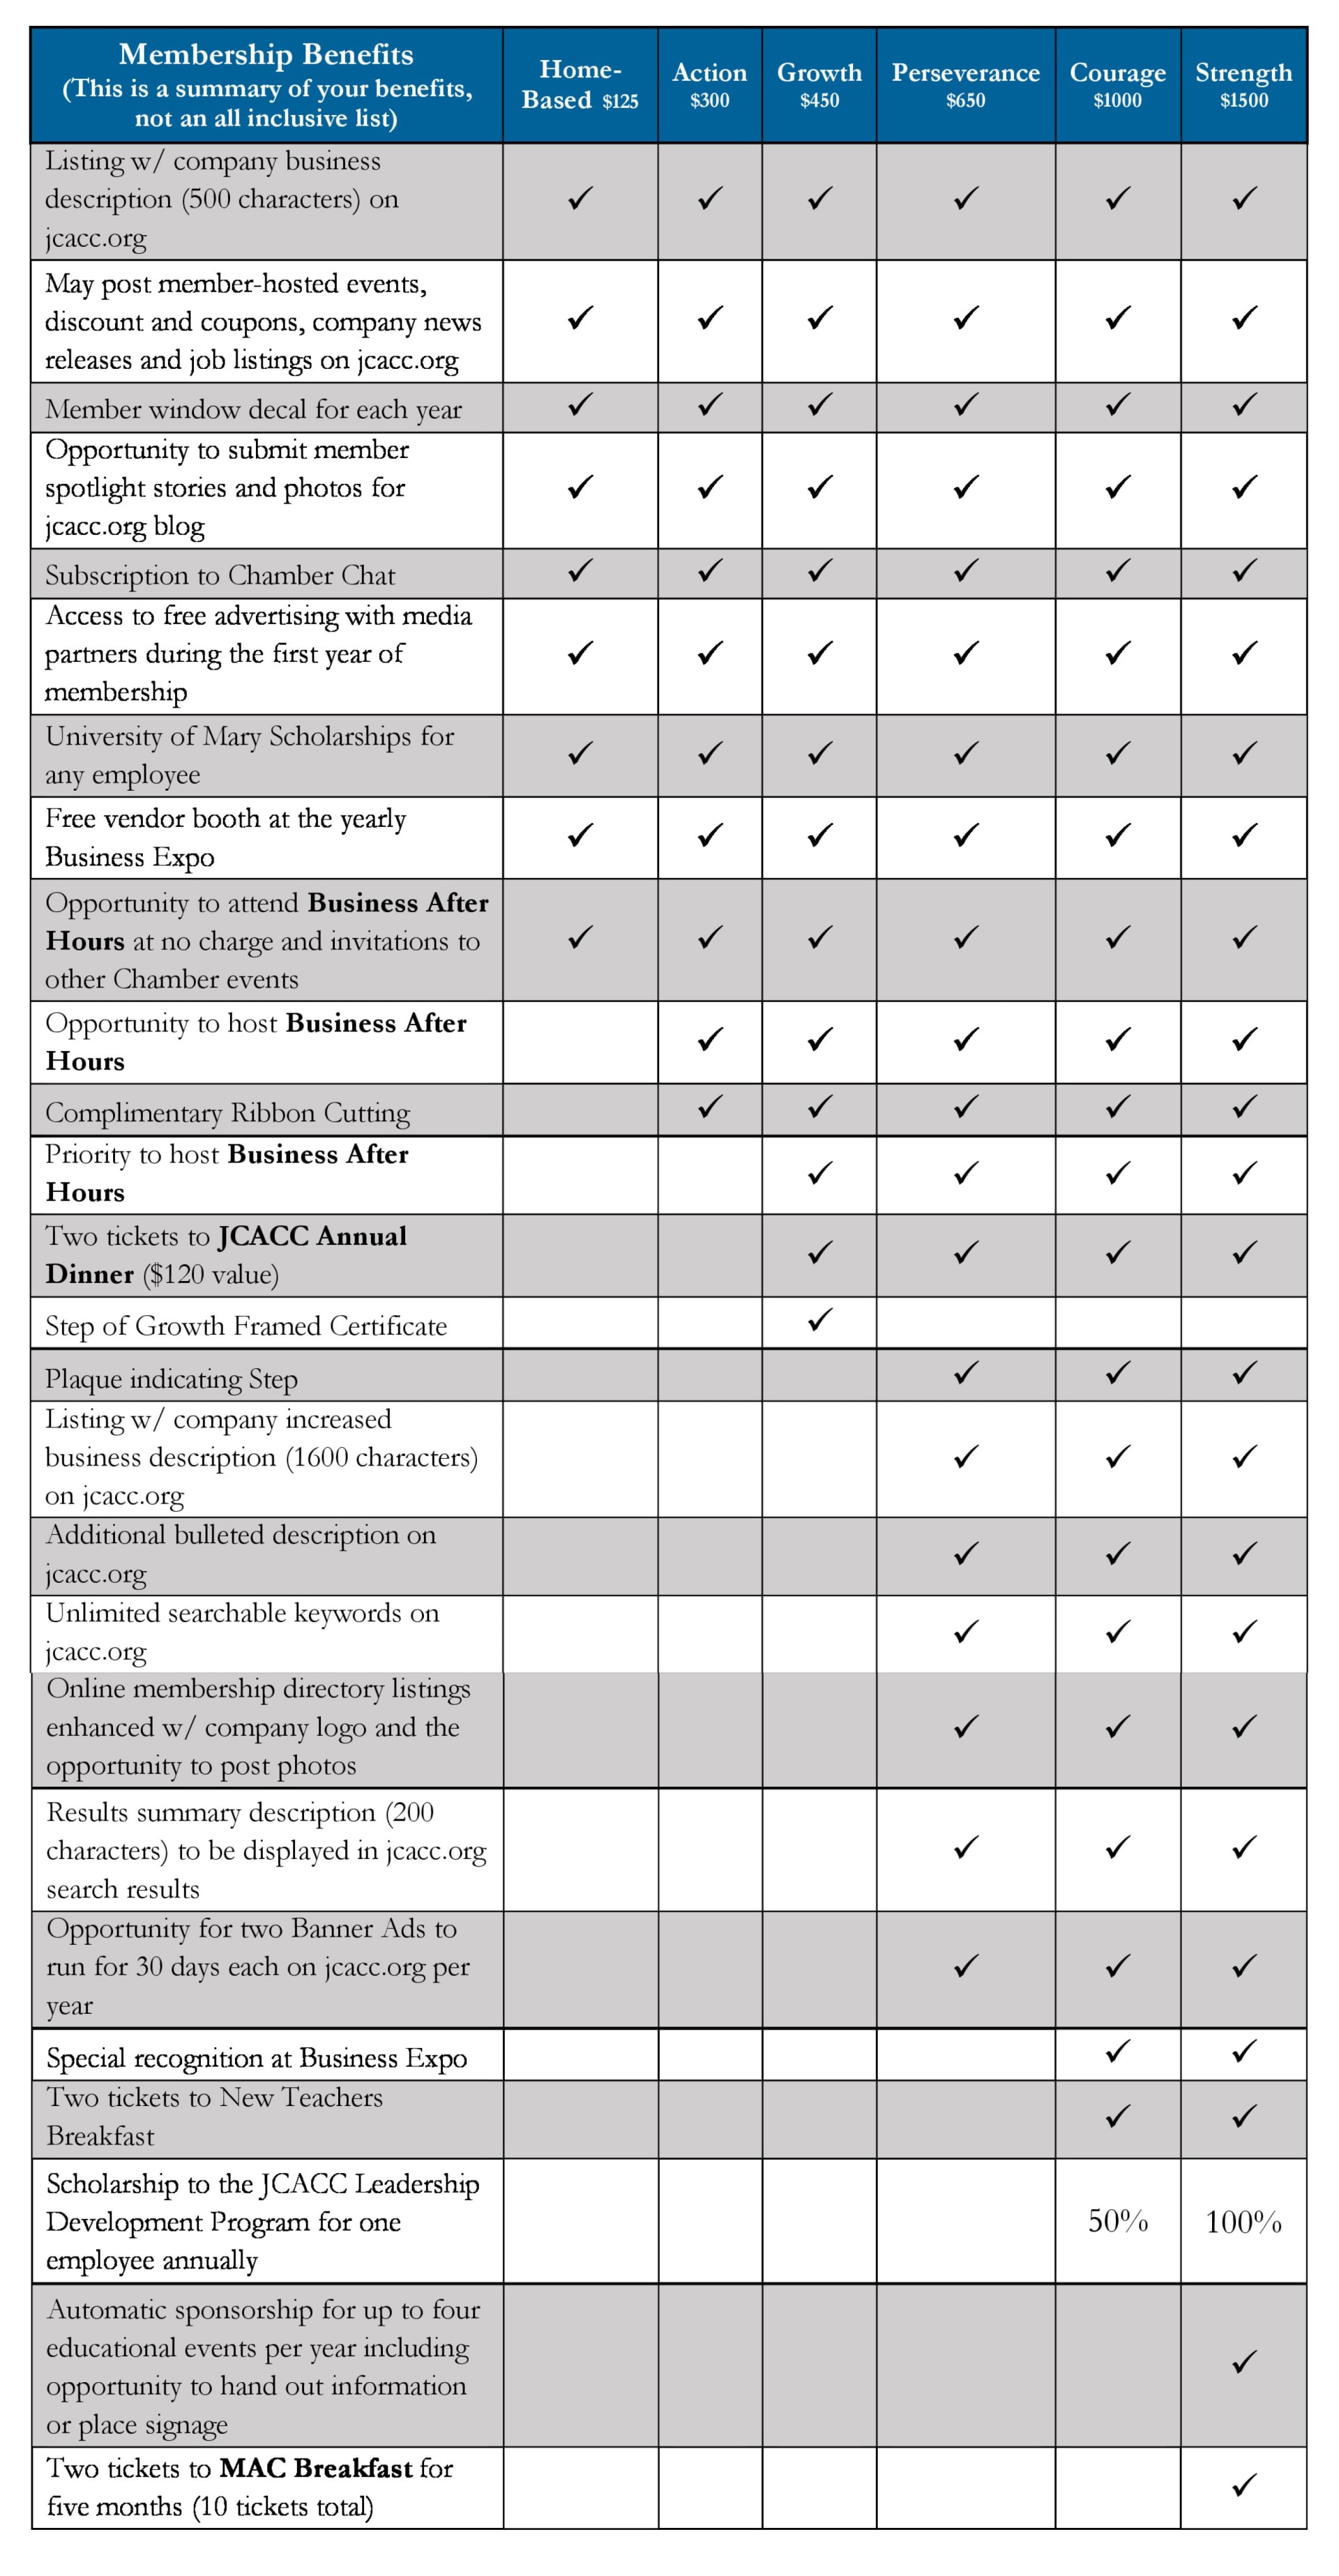 Membership-Benefits-Checklist-FINAL-combined-for-website-w1920.jpg